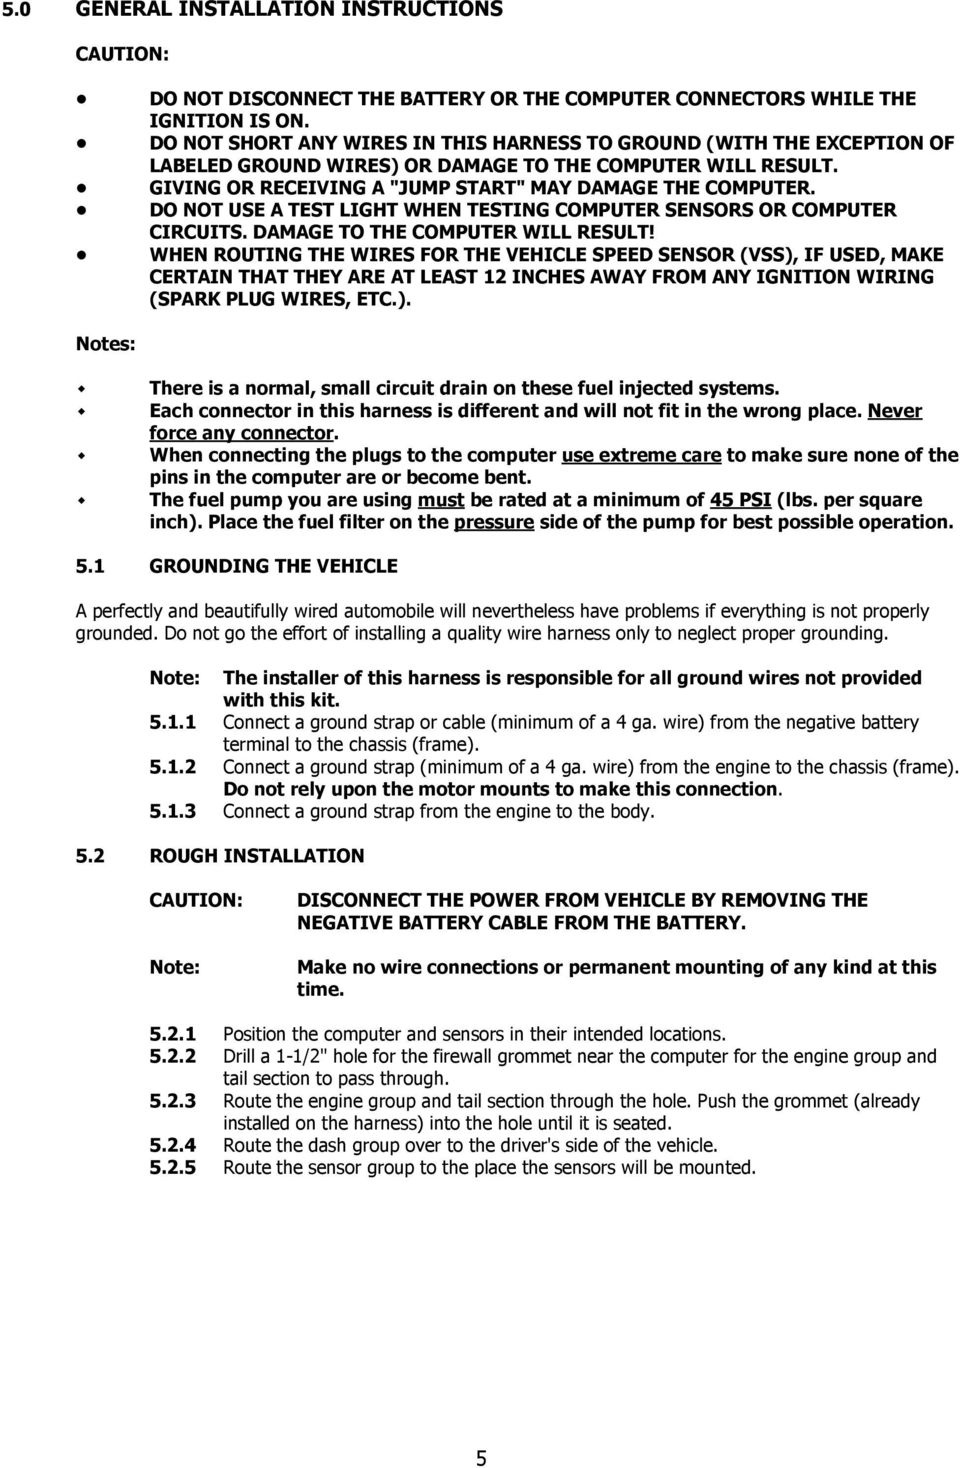 Wire Harness Installation Instructions Pdf Spark Plug Do Not Use A Test Light When Testing Computer Sensors Or Circuits Damage To